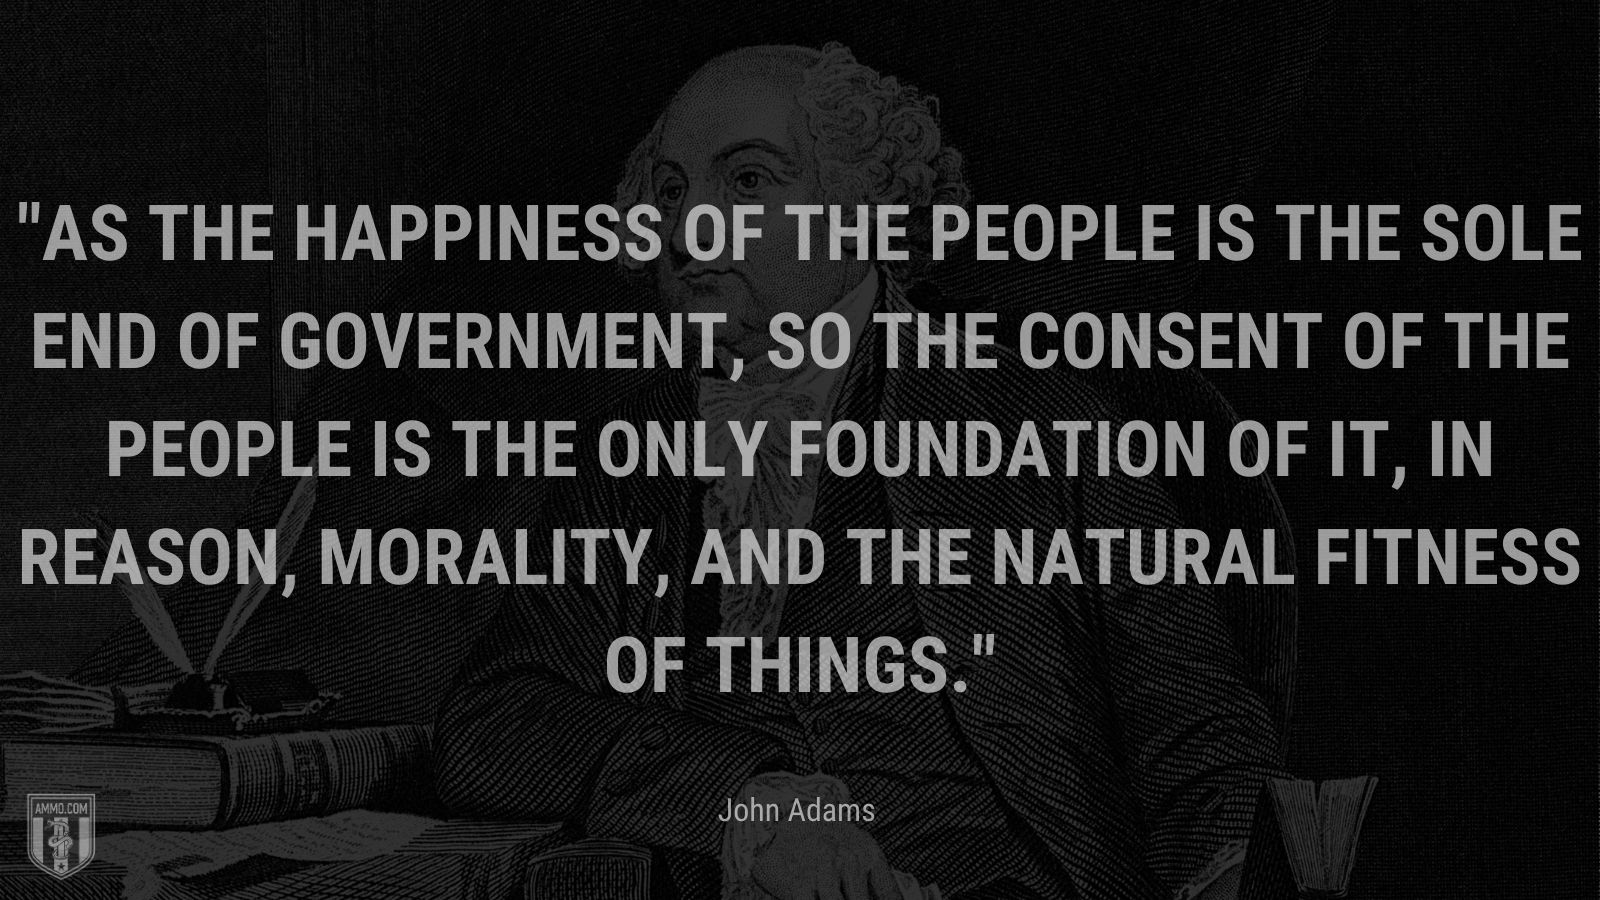 """""""As the happiness of the people is the sole end of government, so the consent of the people is the only foundation of it, in reason, morality, and the natural fitness of things."""" - John Adams"""